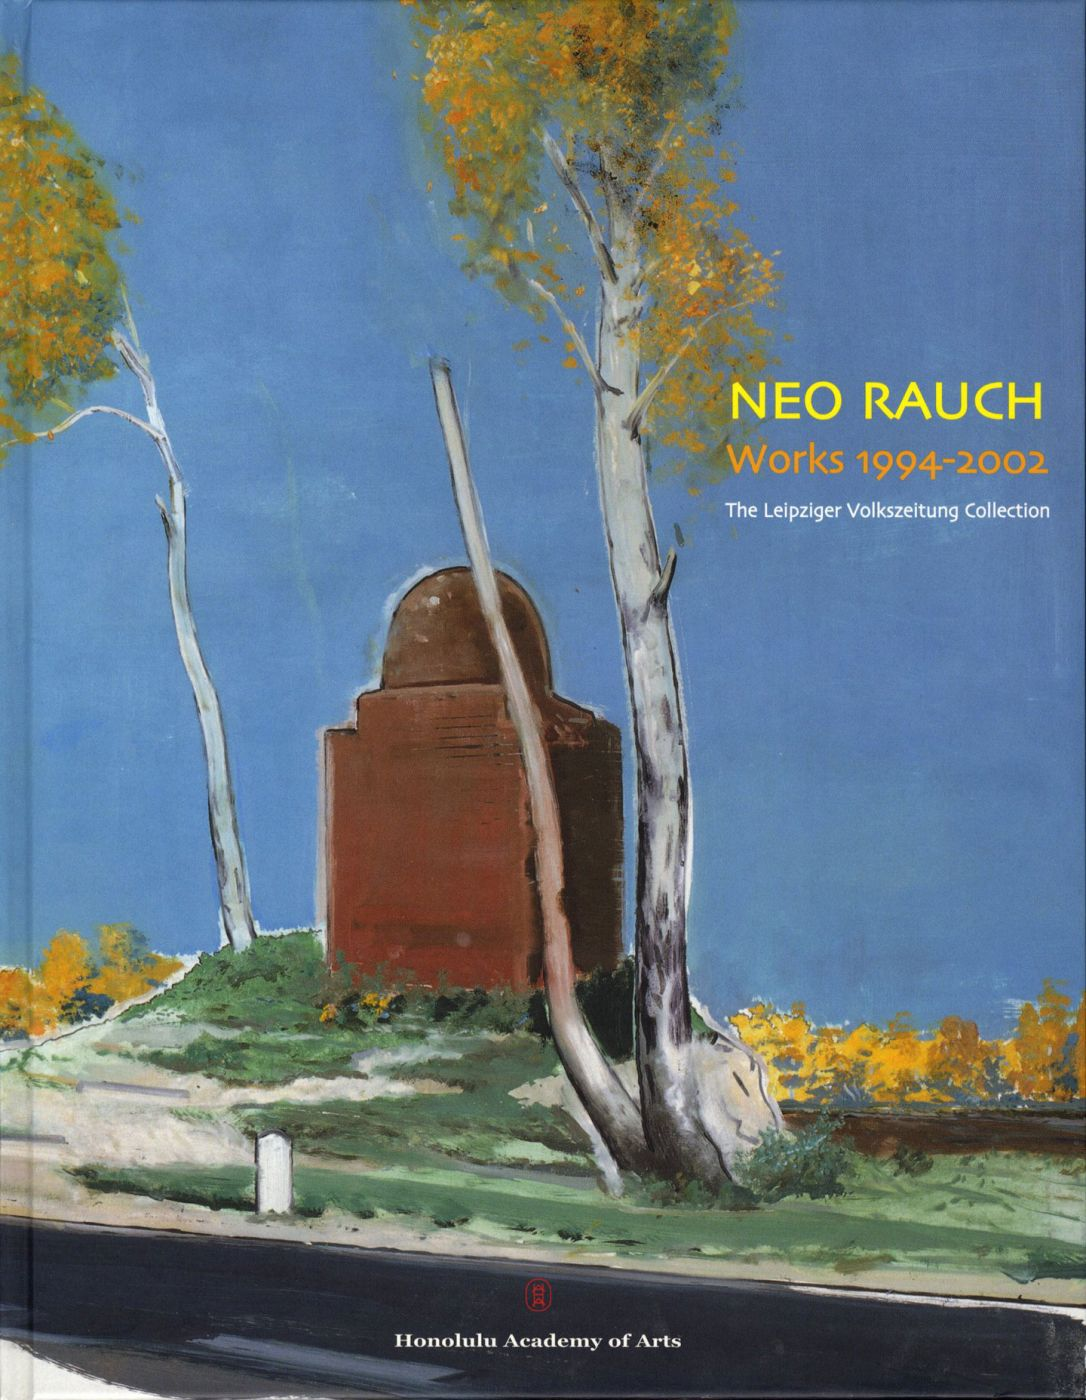 Neo Rauch: Works 1994-2002 - The Leipziger Volkszeitung Collection [SIGNED]